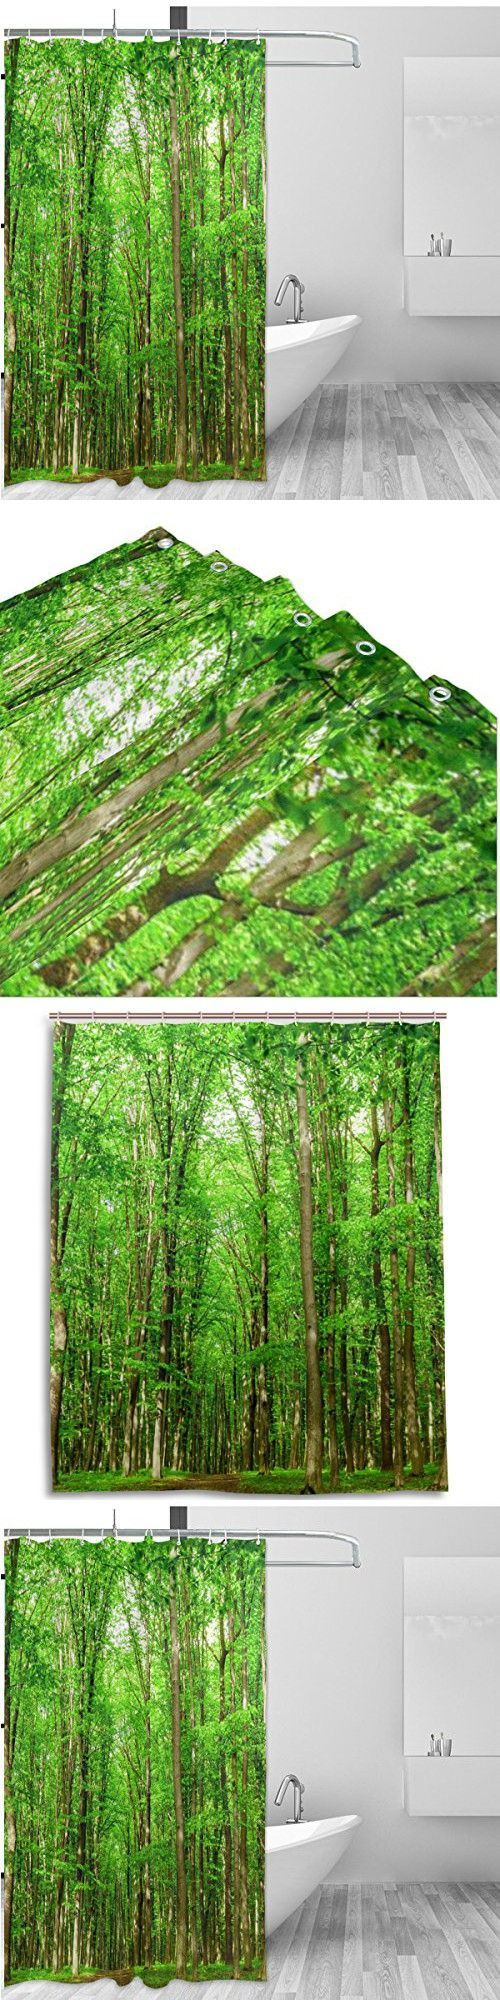 Rainforest shower curtain - Tree Of Life Home Decor Shower Curtain Set By Alaza Natural Landscape Scene Tropical Woodland